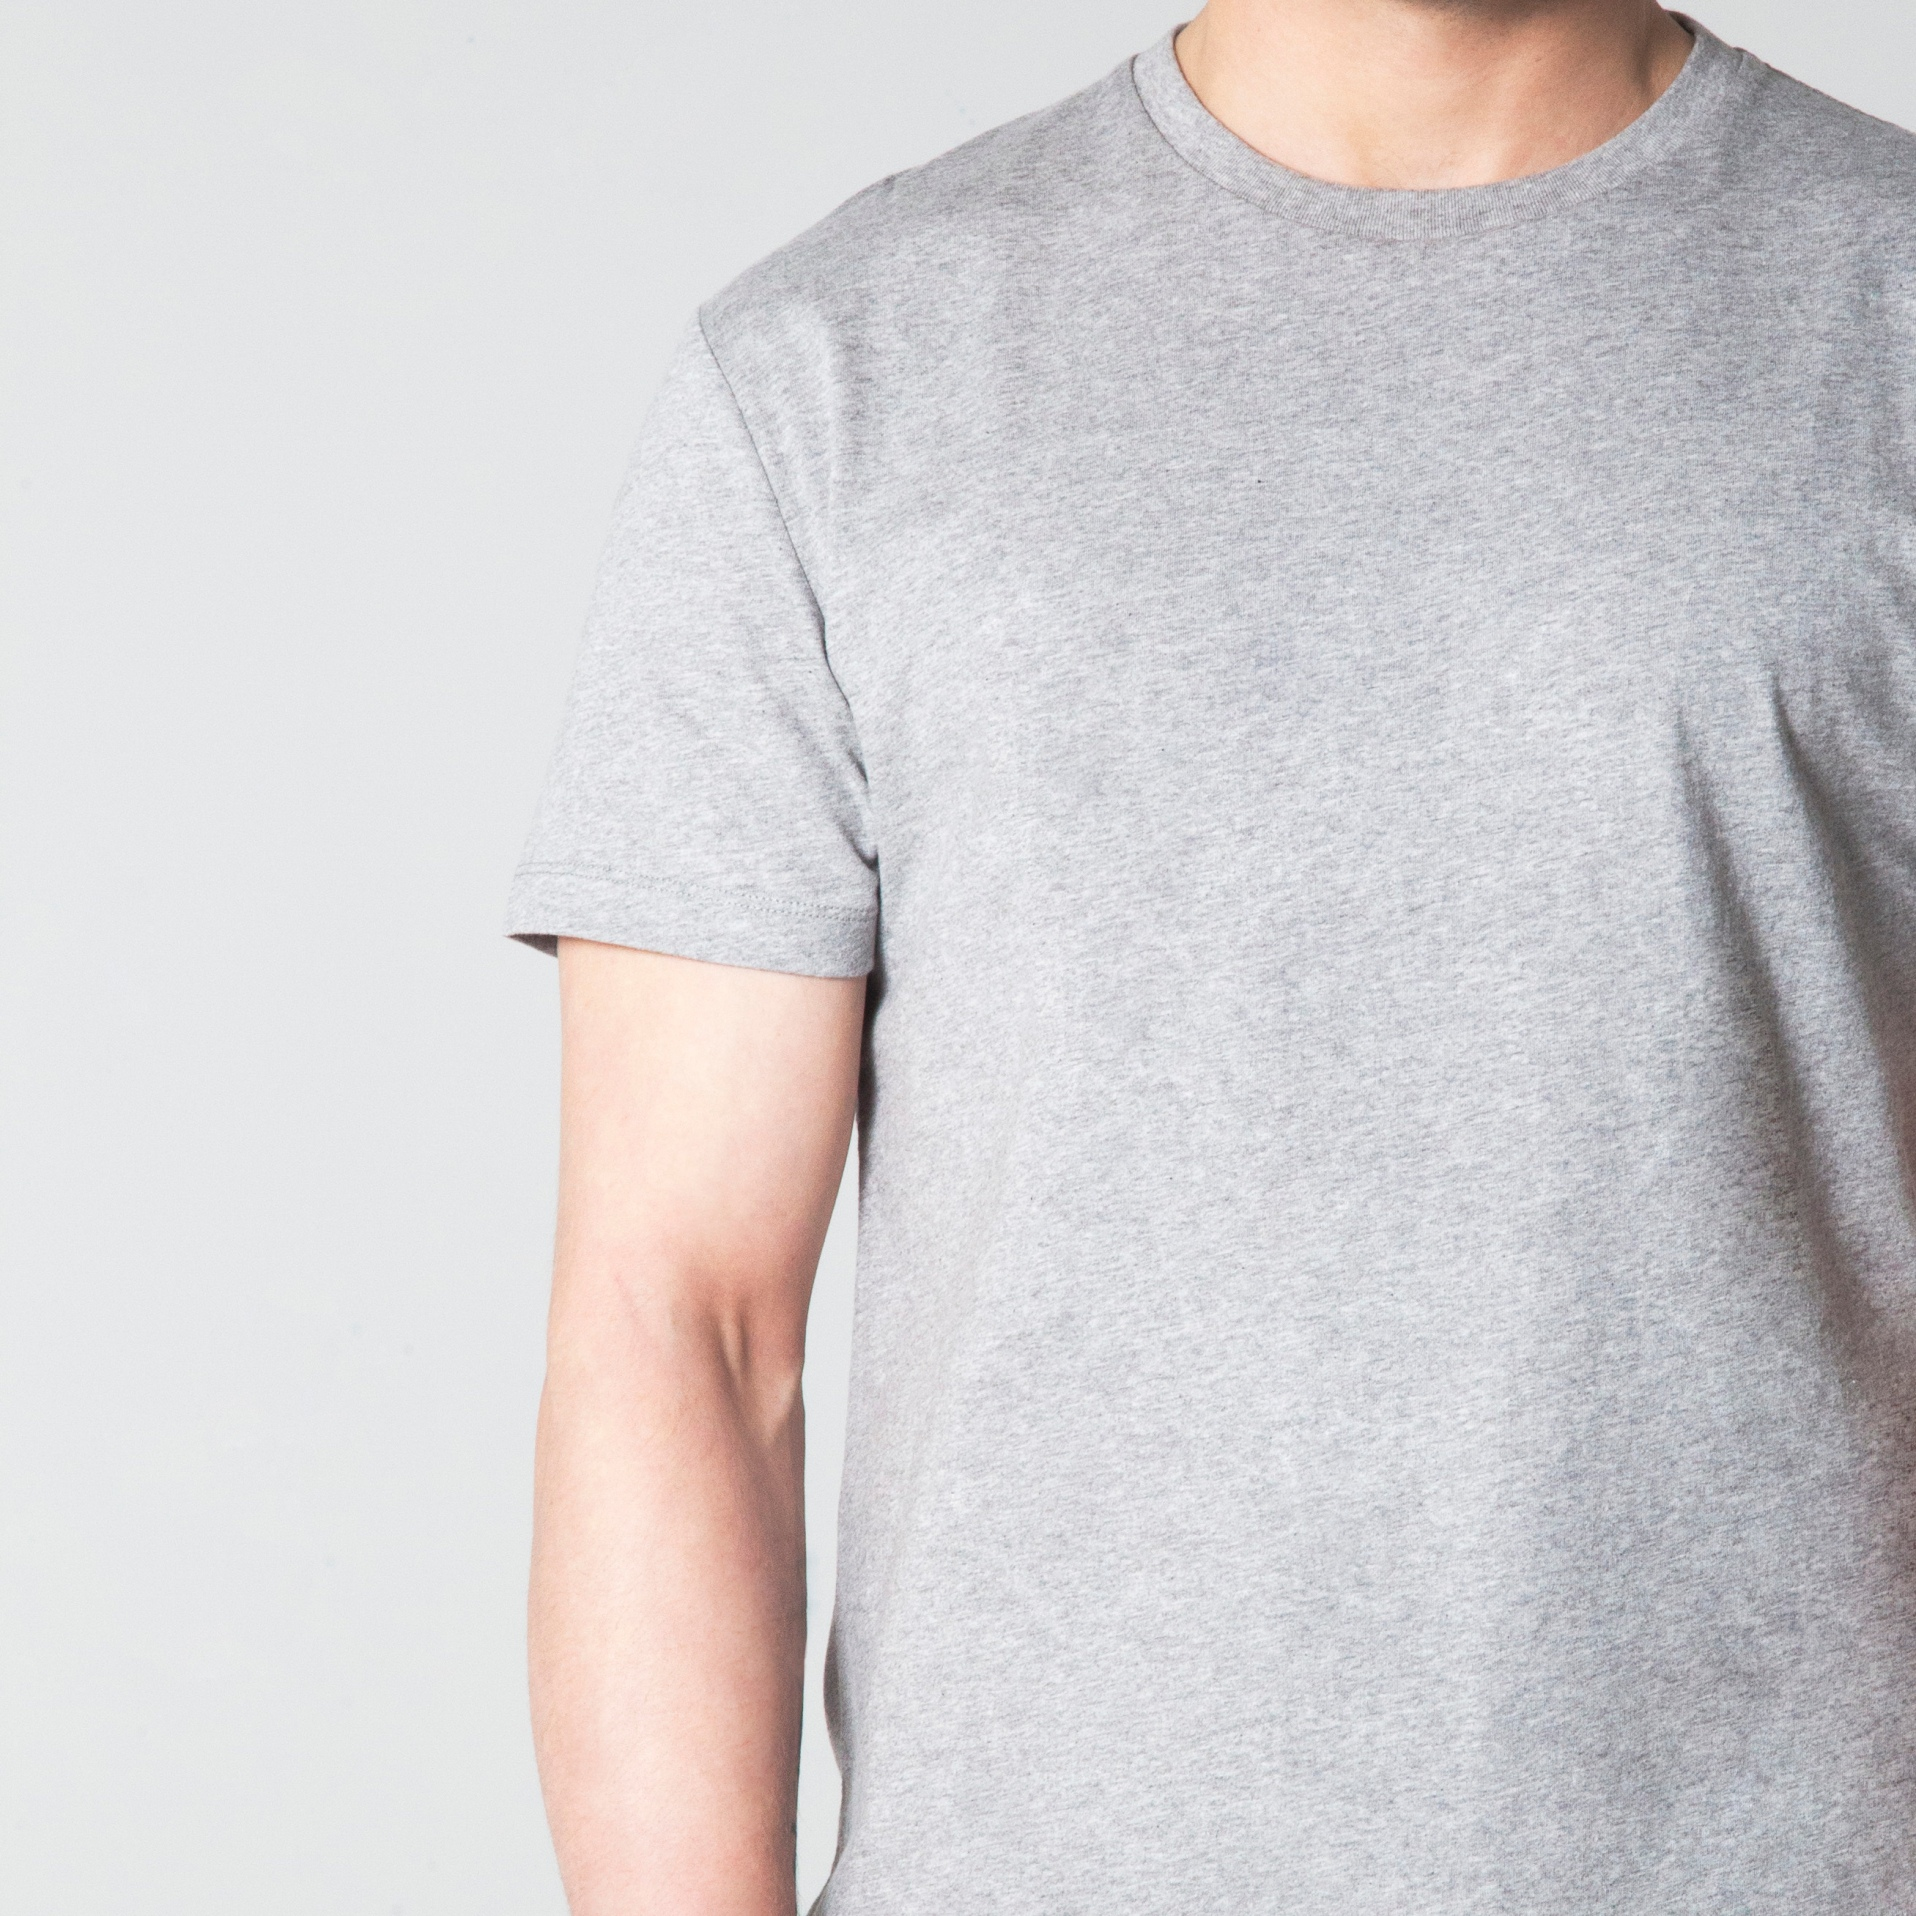 OURVER Grey Melange T-Shirt new